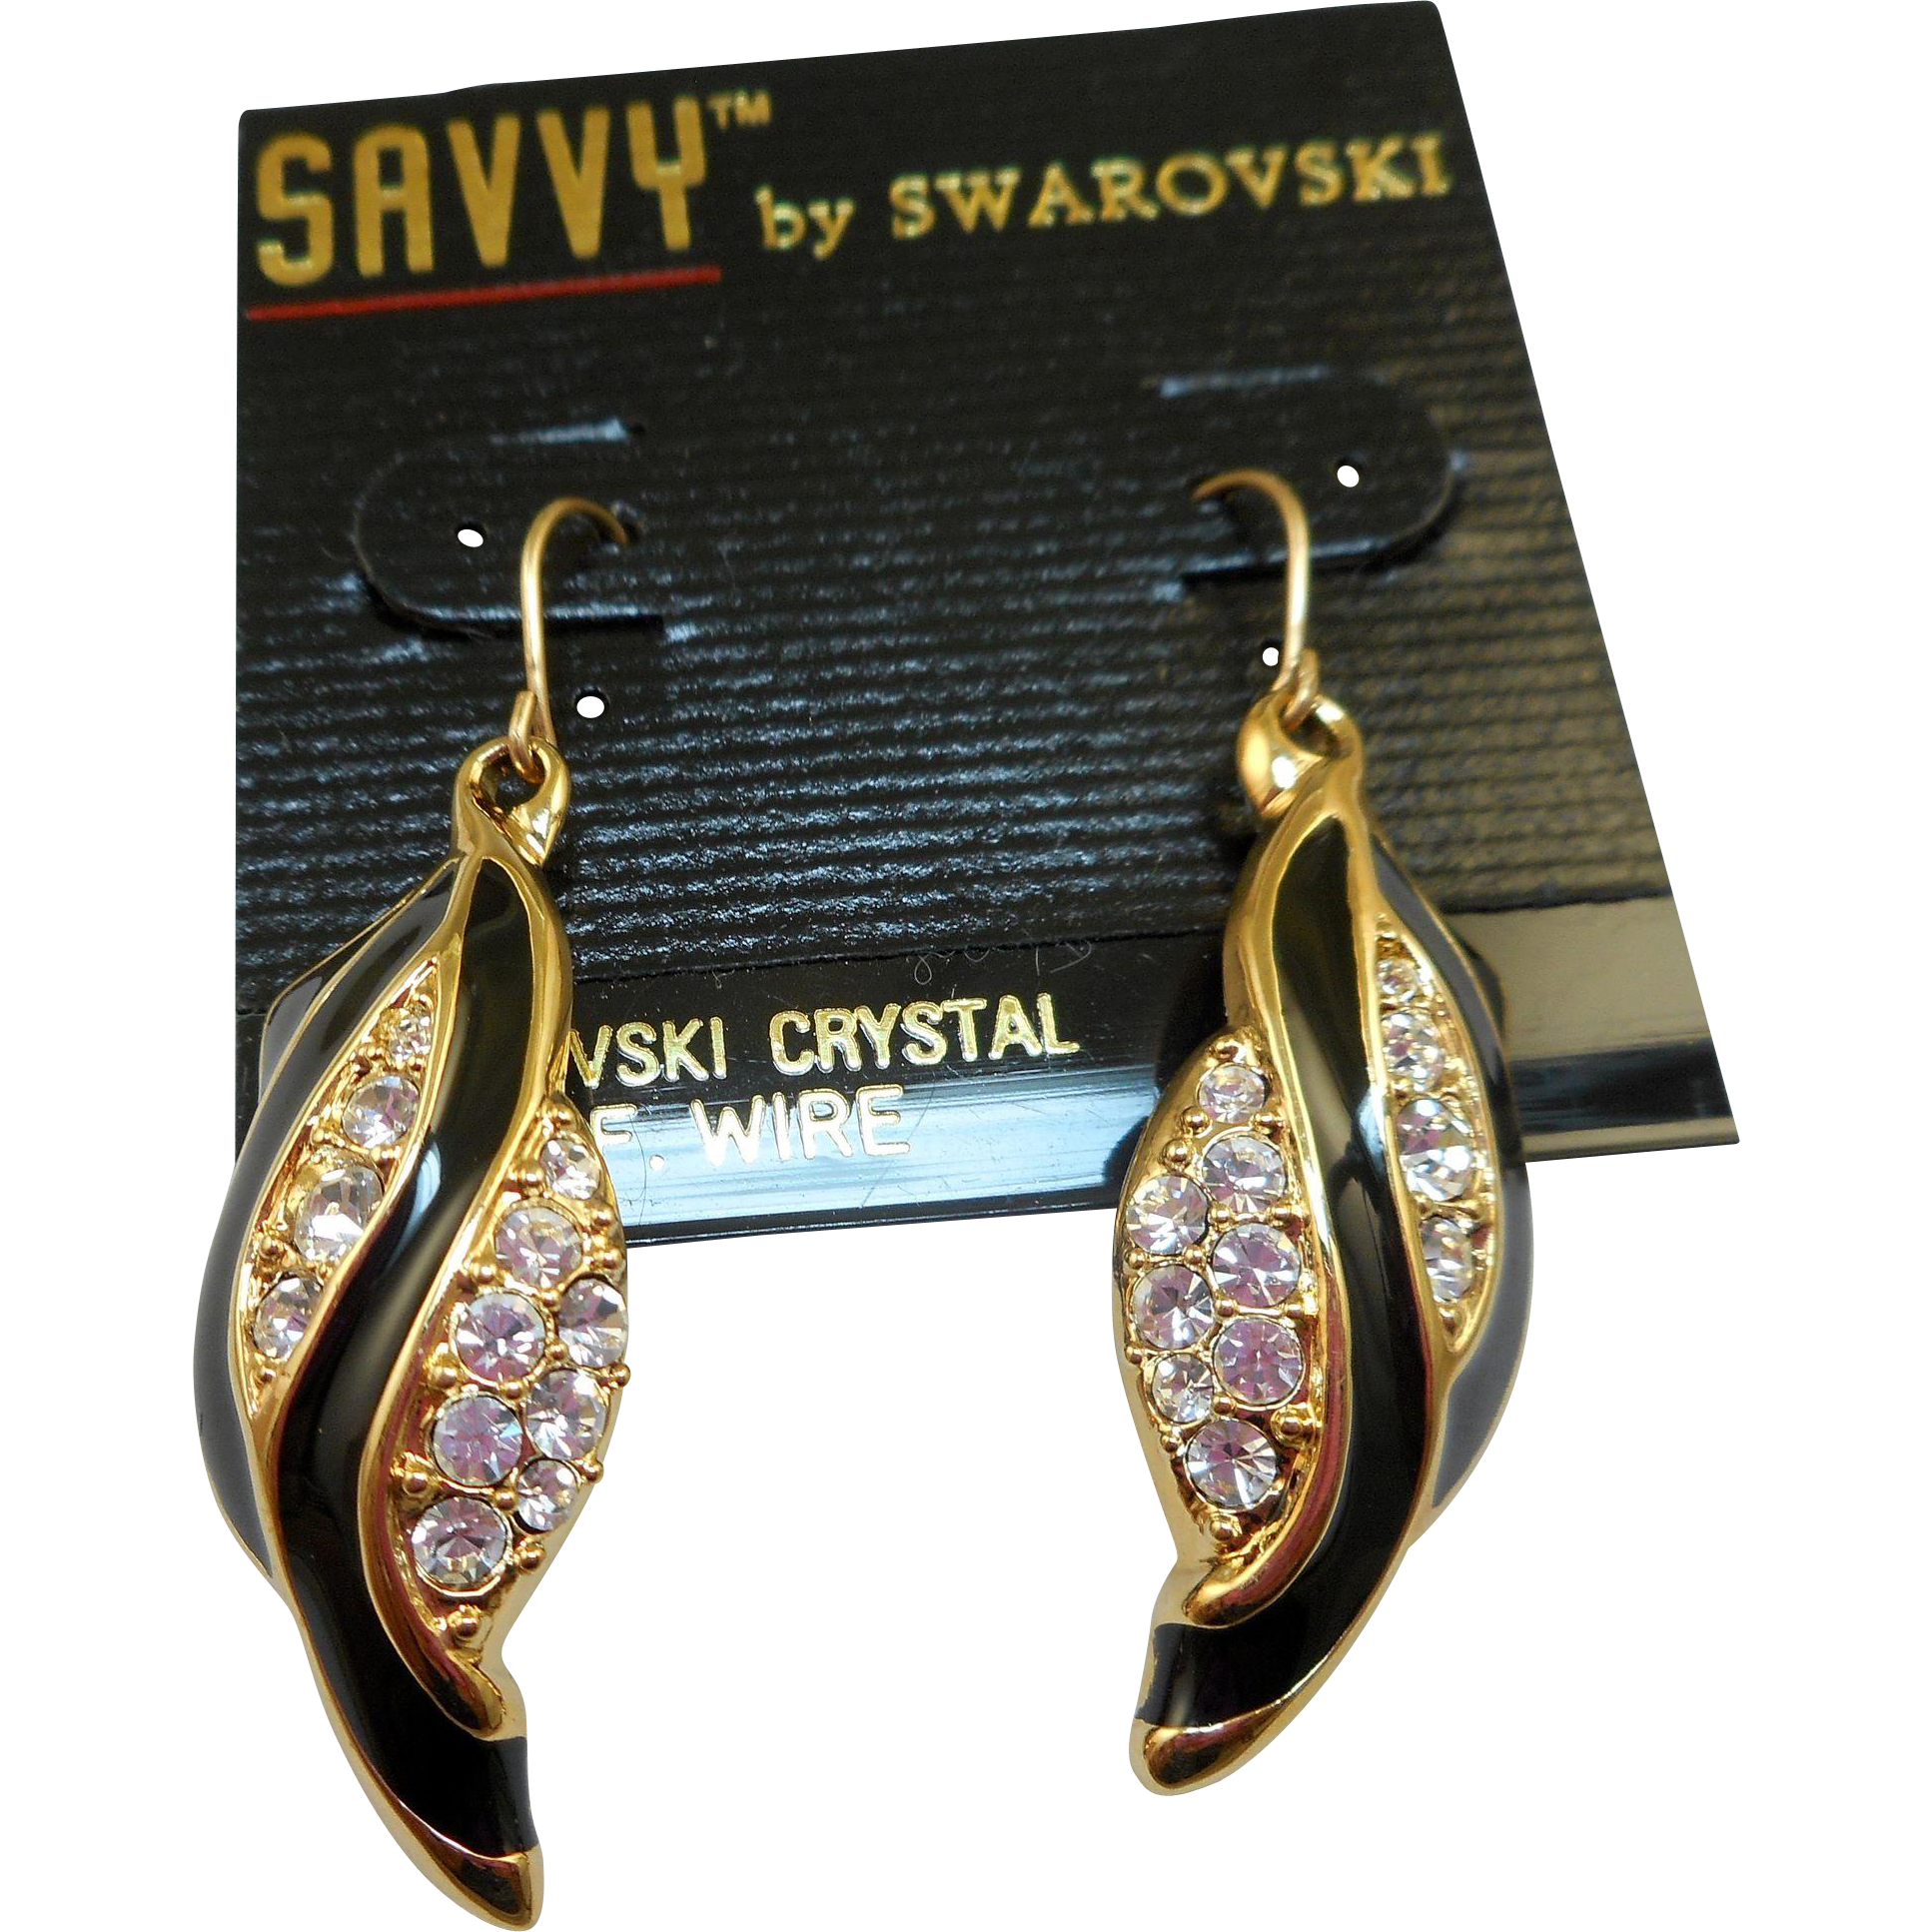 Swarovski Savvy Black Enamel Rhinestone Earrings - MOC